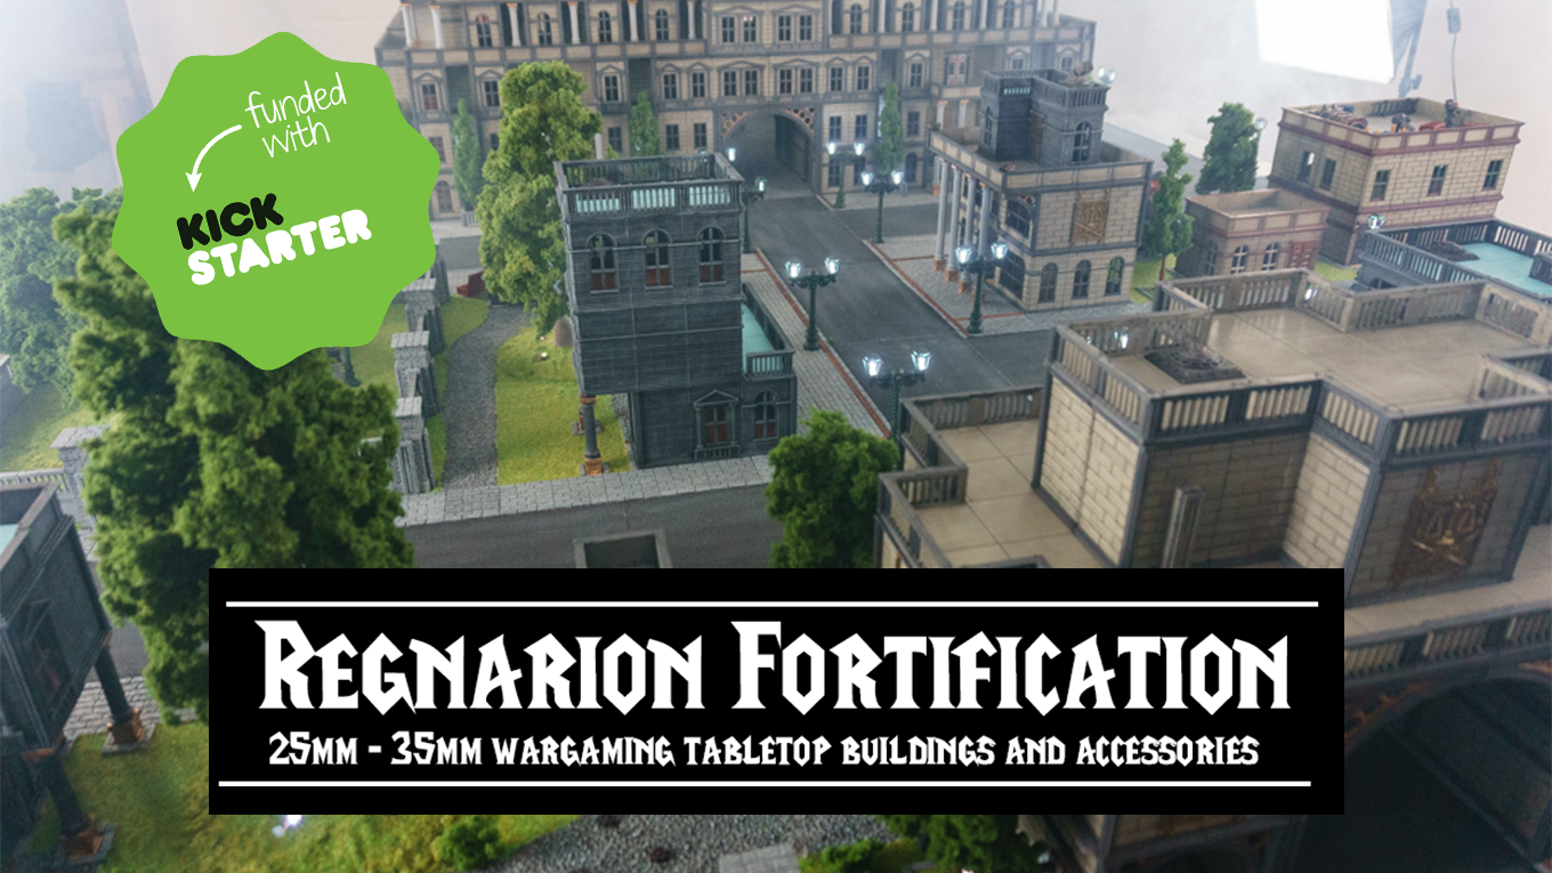 25mm - 28mm - 32mm - 35mm 'Regnarion Fortification' wargaming tabletop buildings and accessories